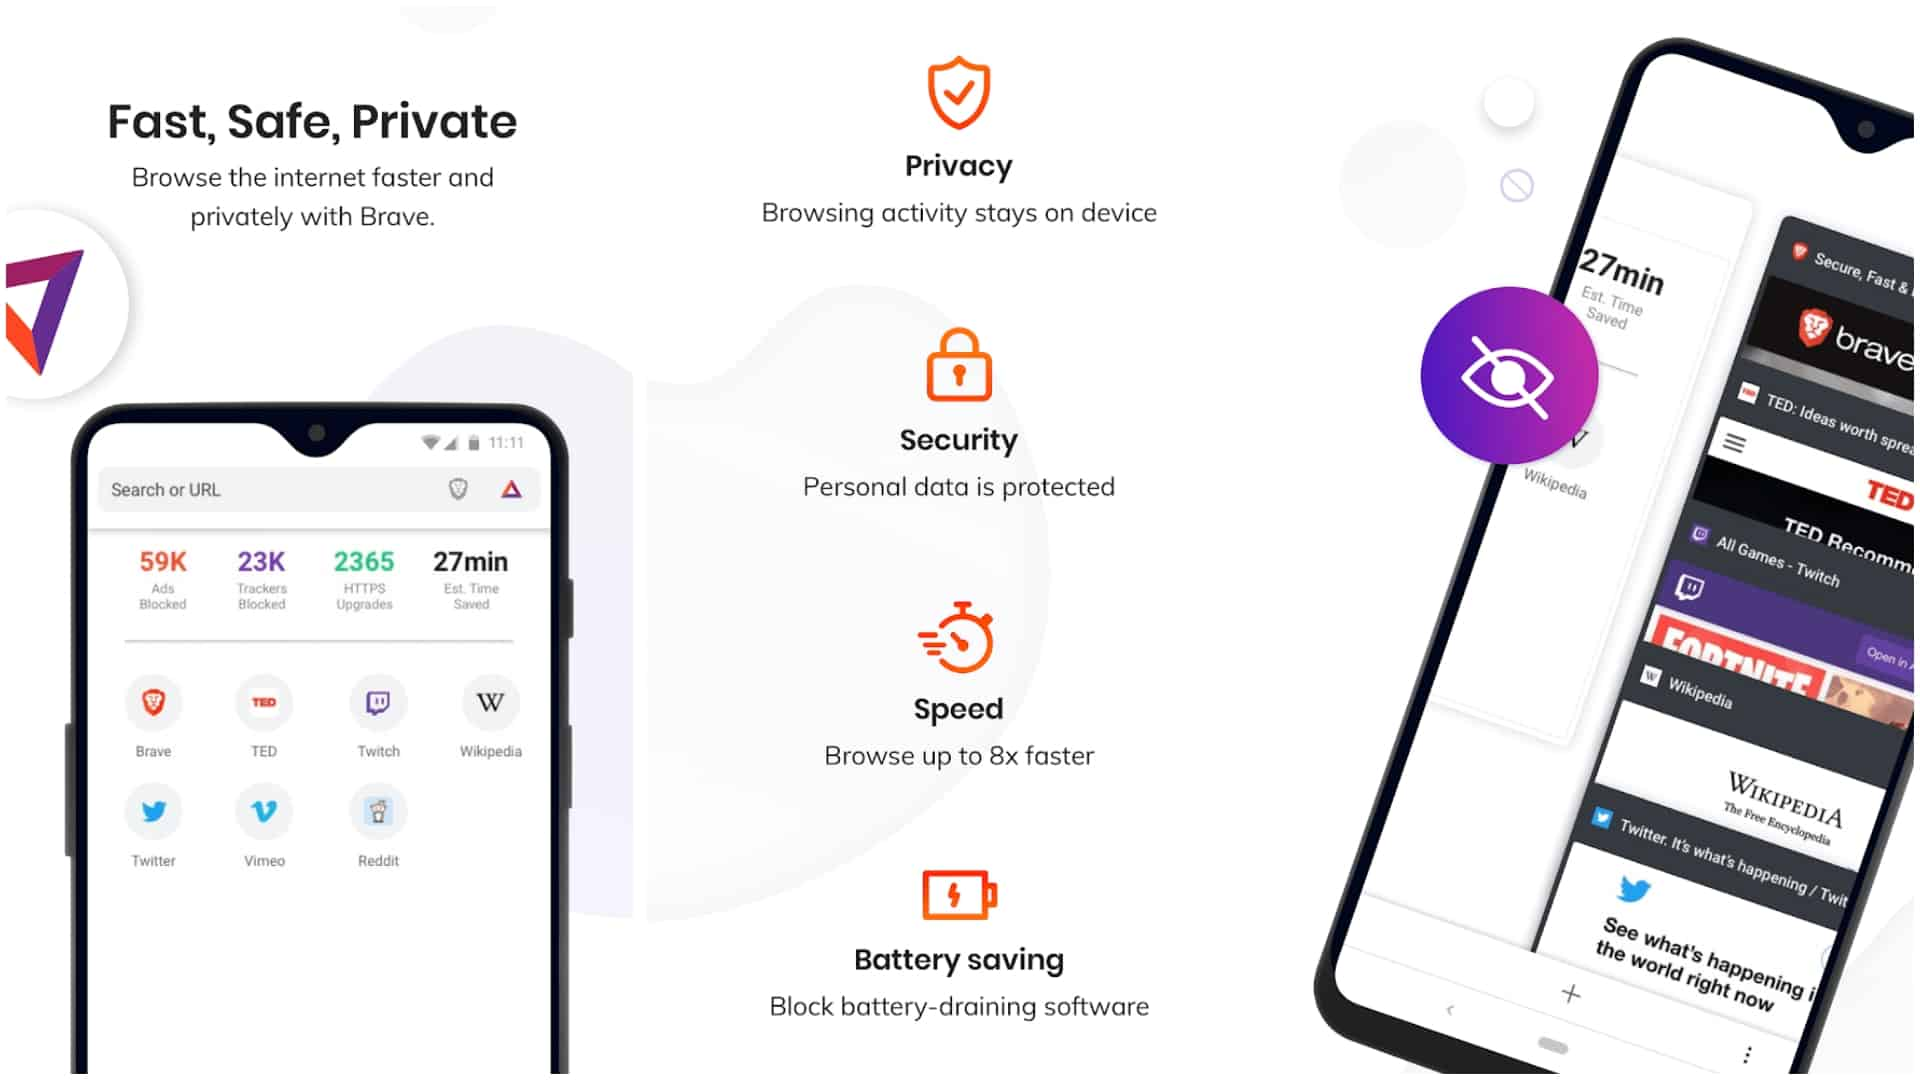 Brave Browser app image January 2020